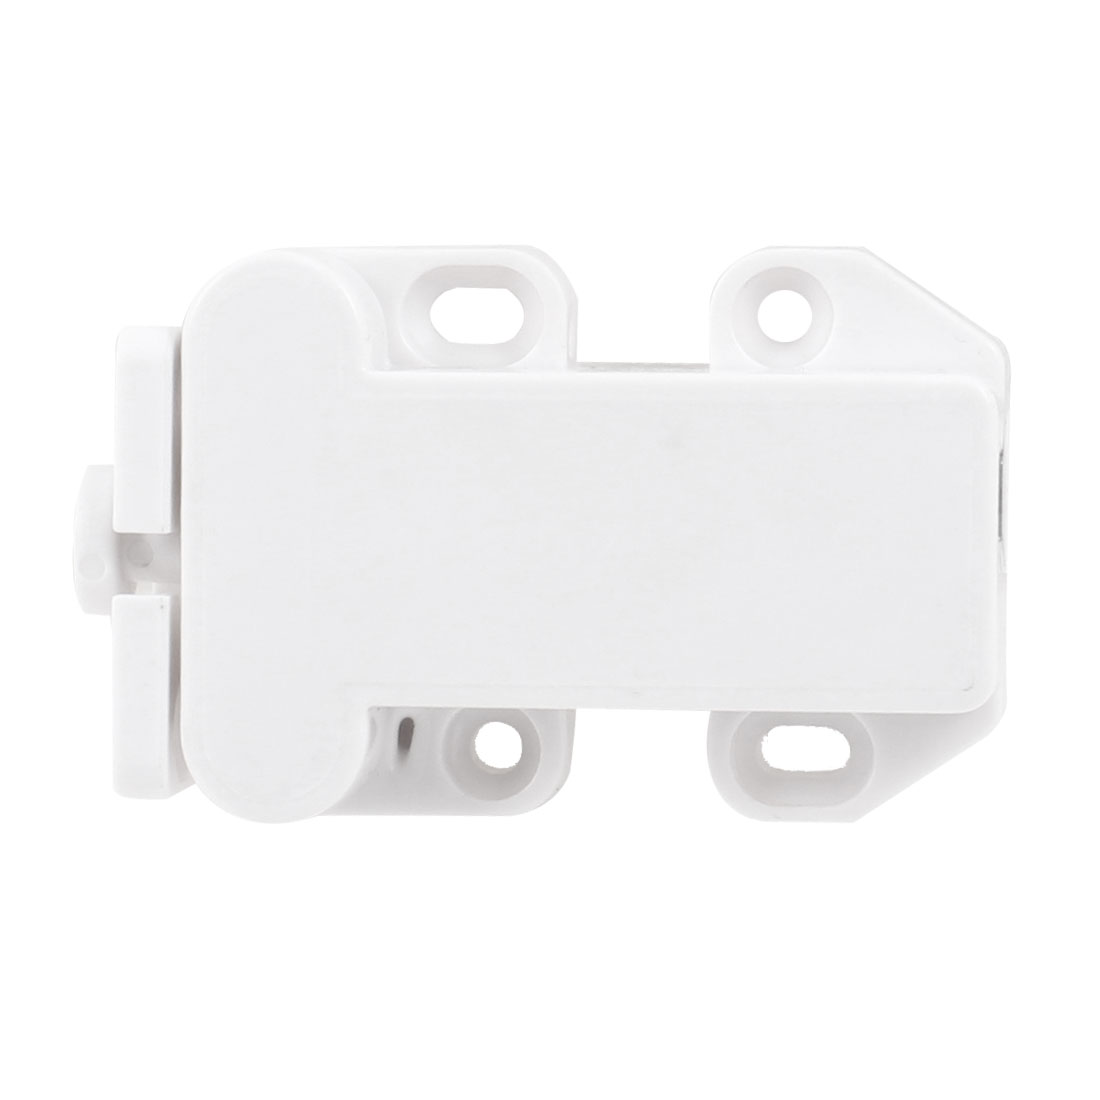 6.5cm x 4.2cm x 1.6cm White Plastic Bin Push Open Door Catch Latch